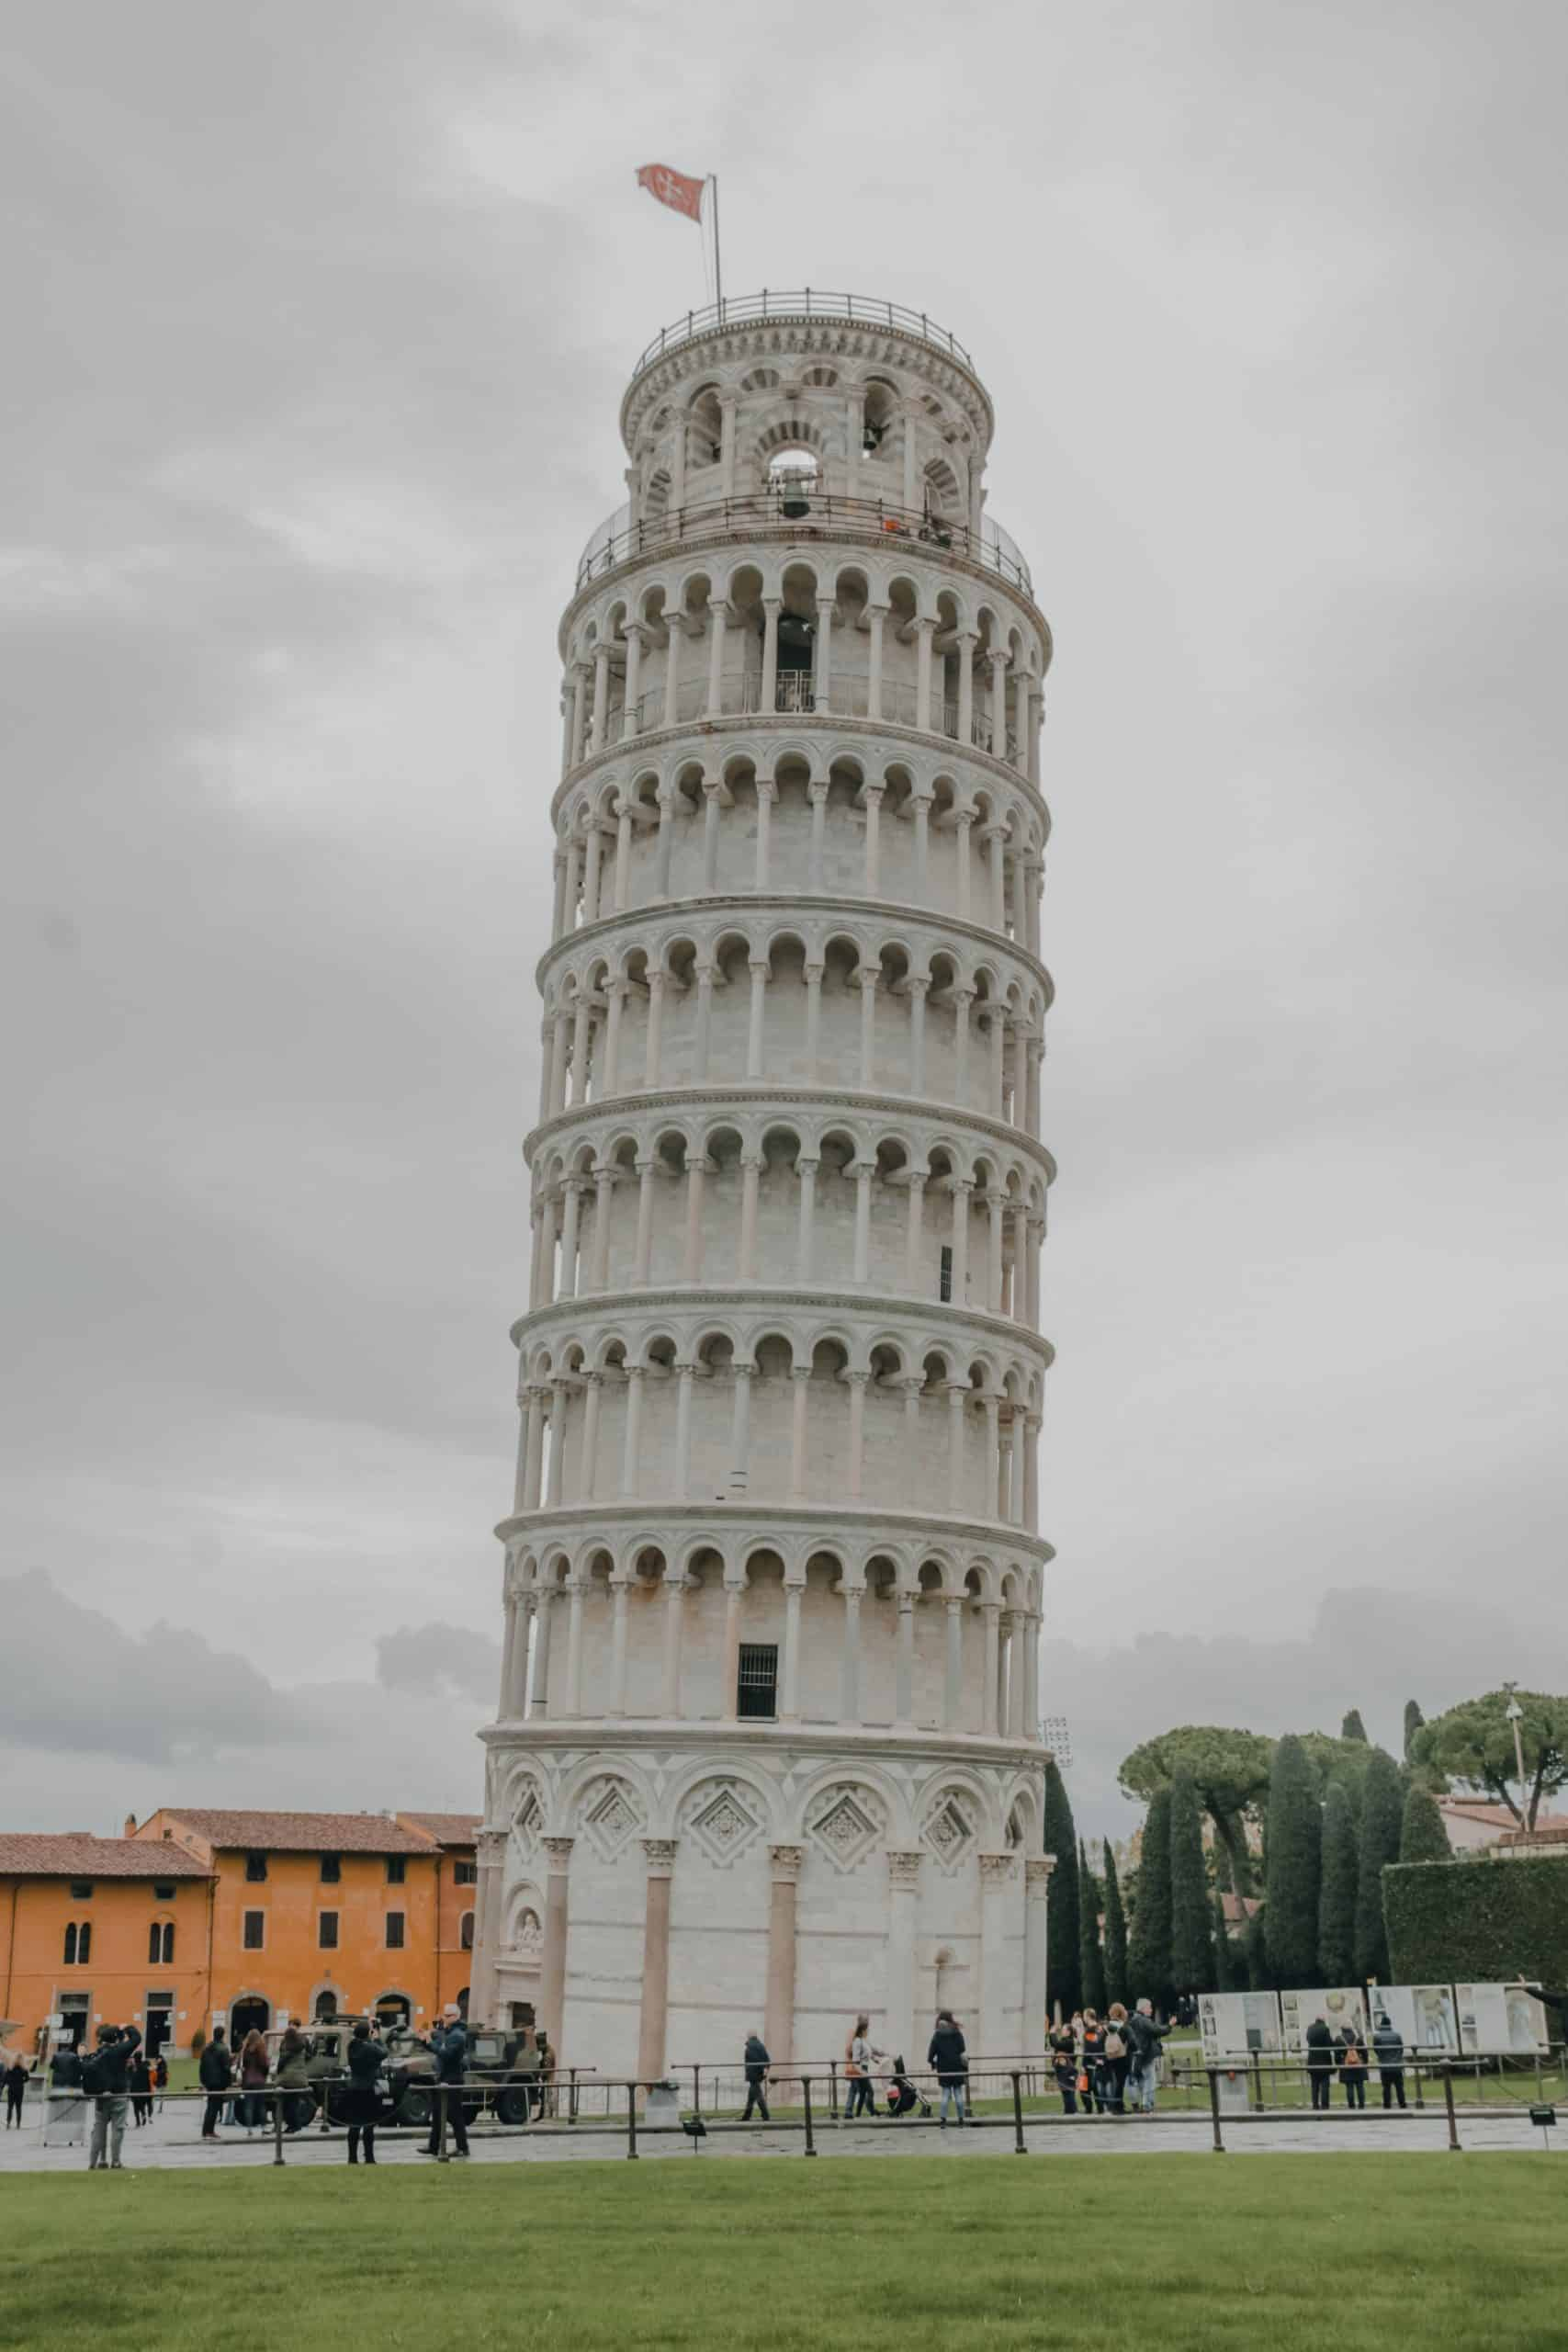 Painting Techniques for Pisa Tower